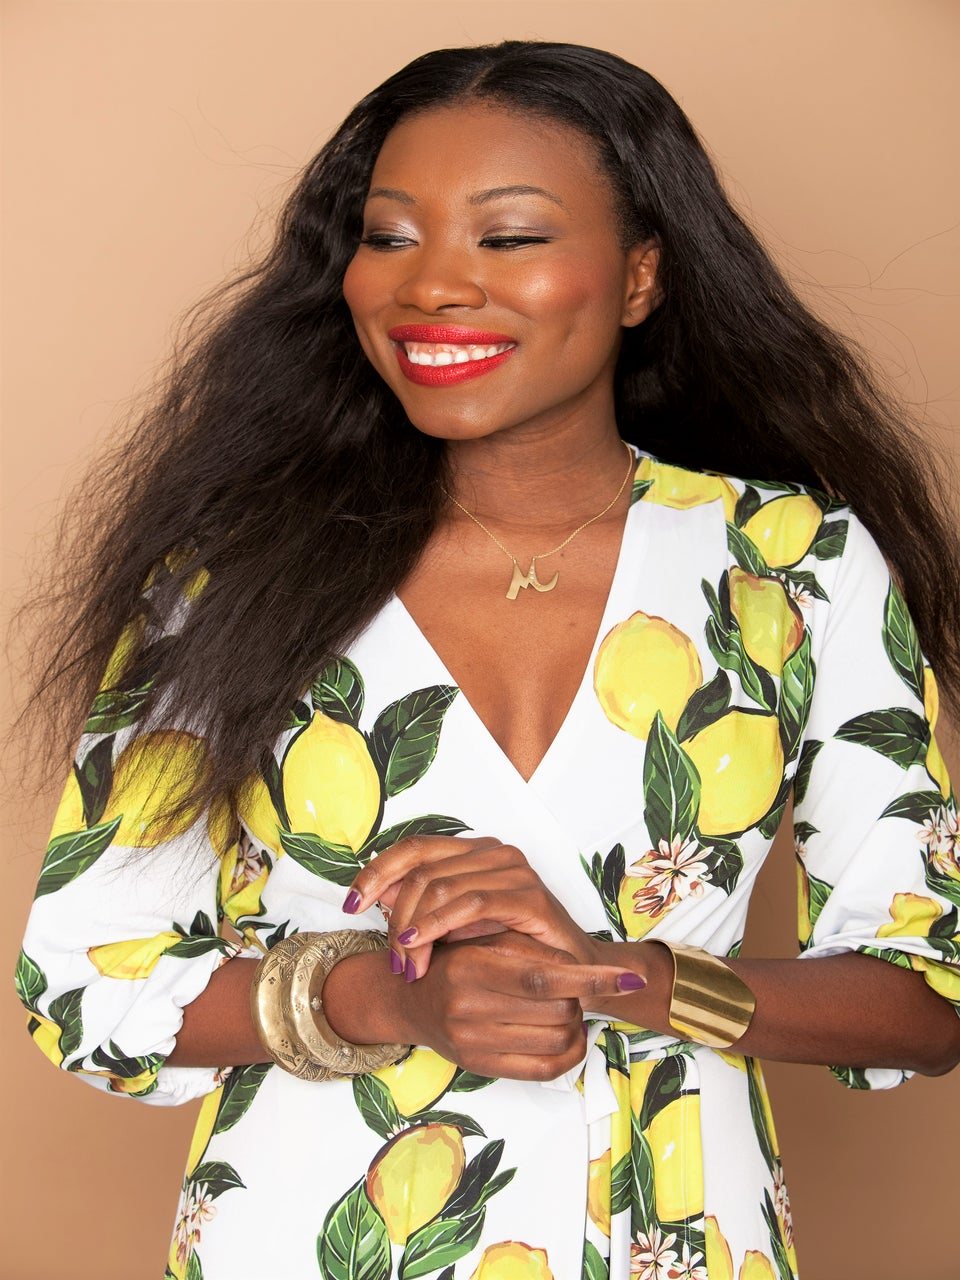 ESSENCE Network: This Haitian Fashion Designer Is Making Money and A Statement With Her Designs